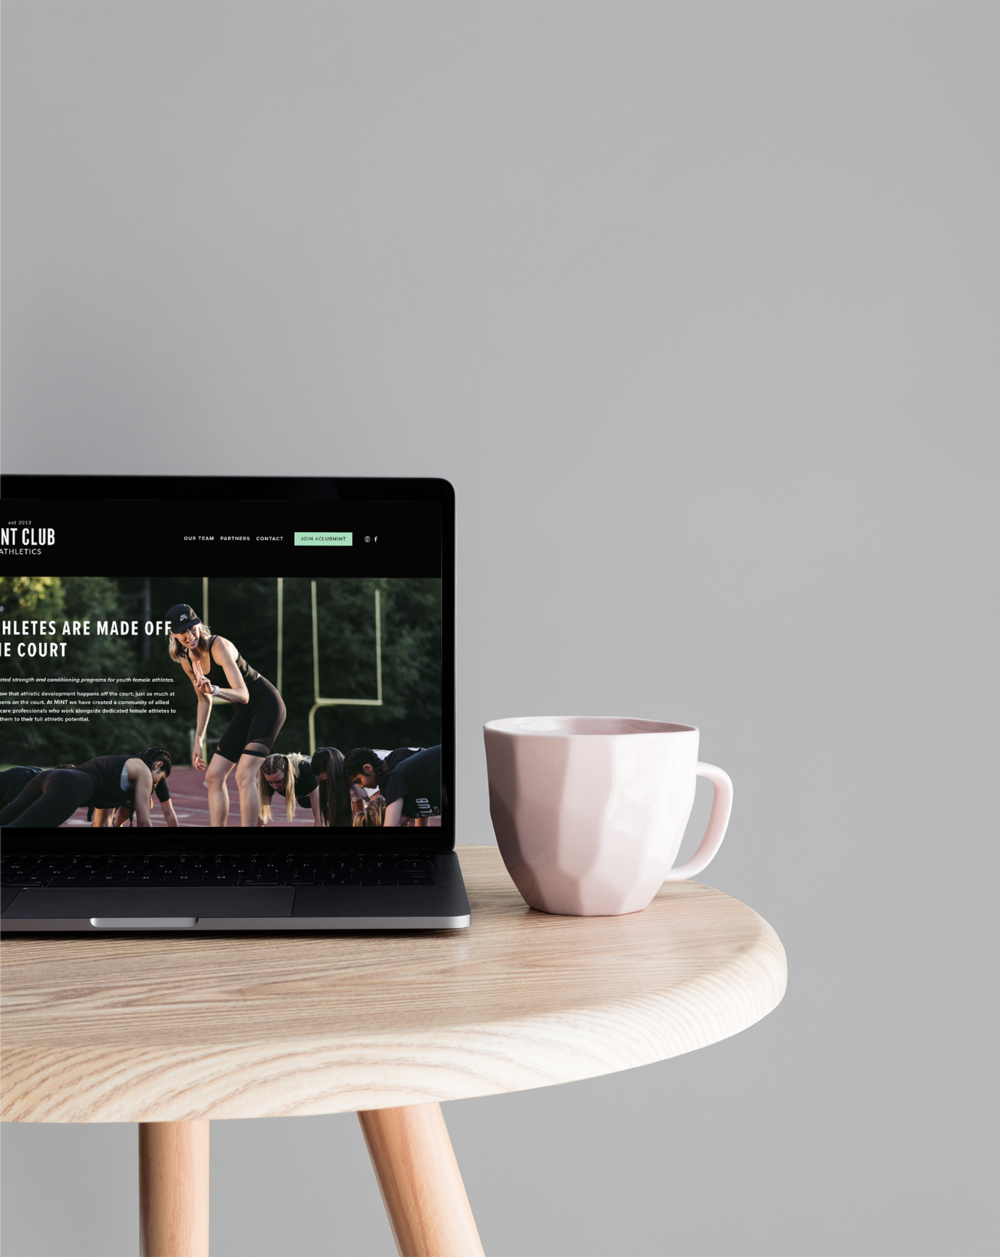 Mint Club Athletics website on a laptop sat on a wooden table with a pink coffee mug.